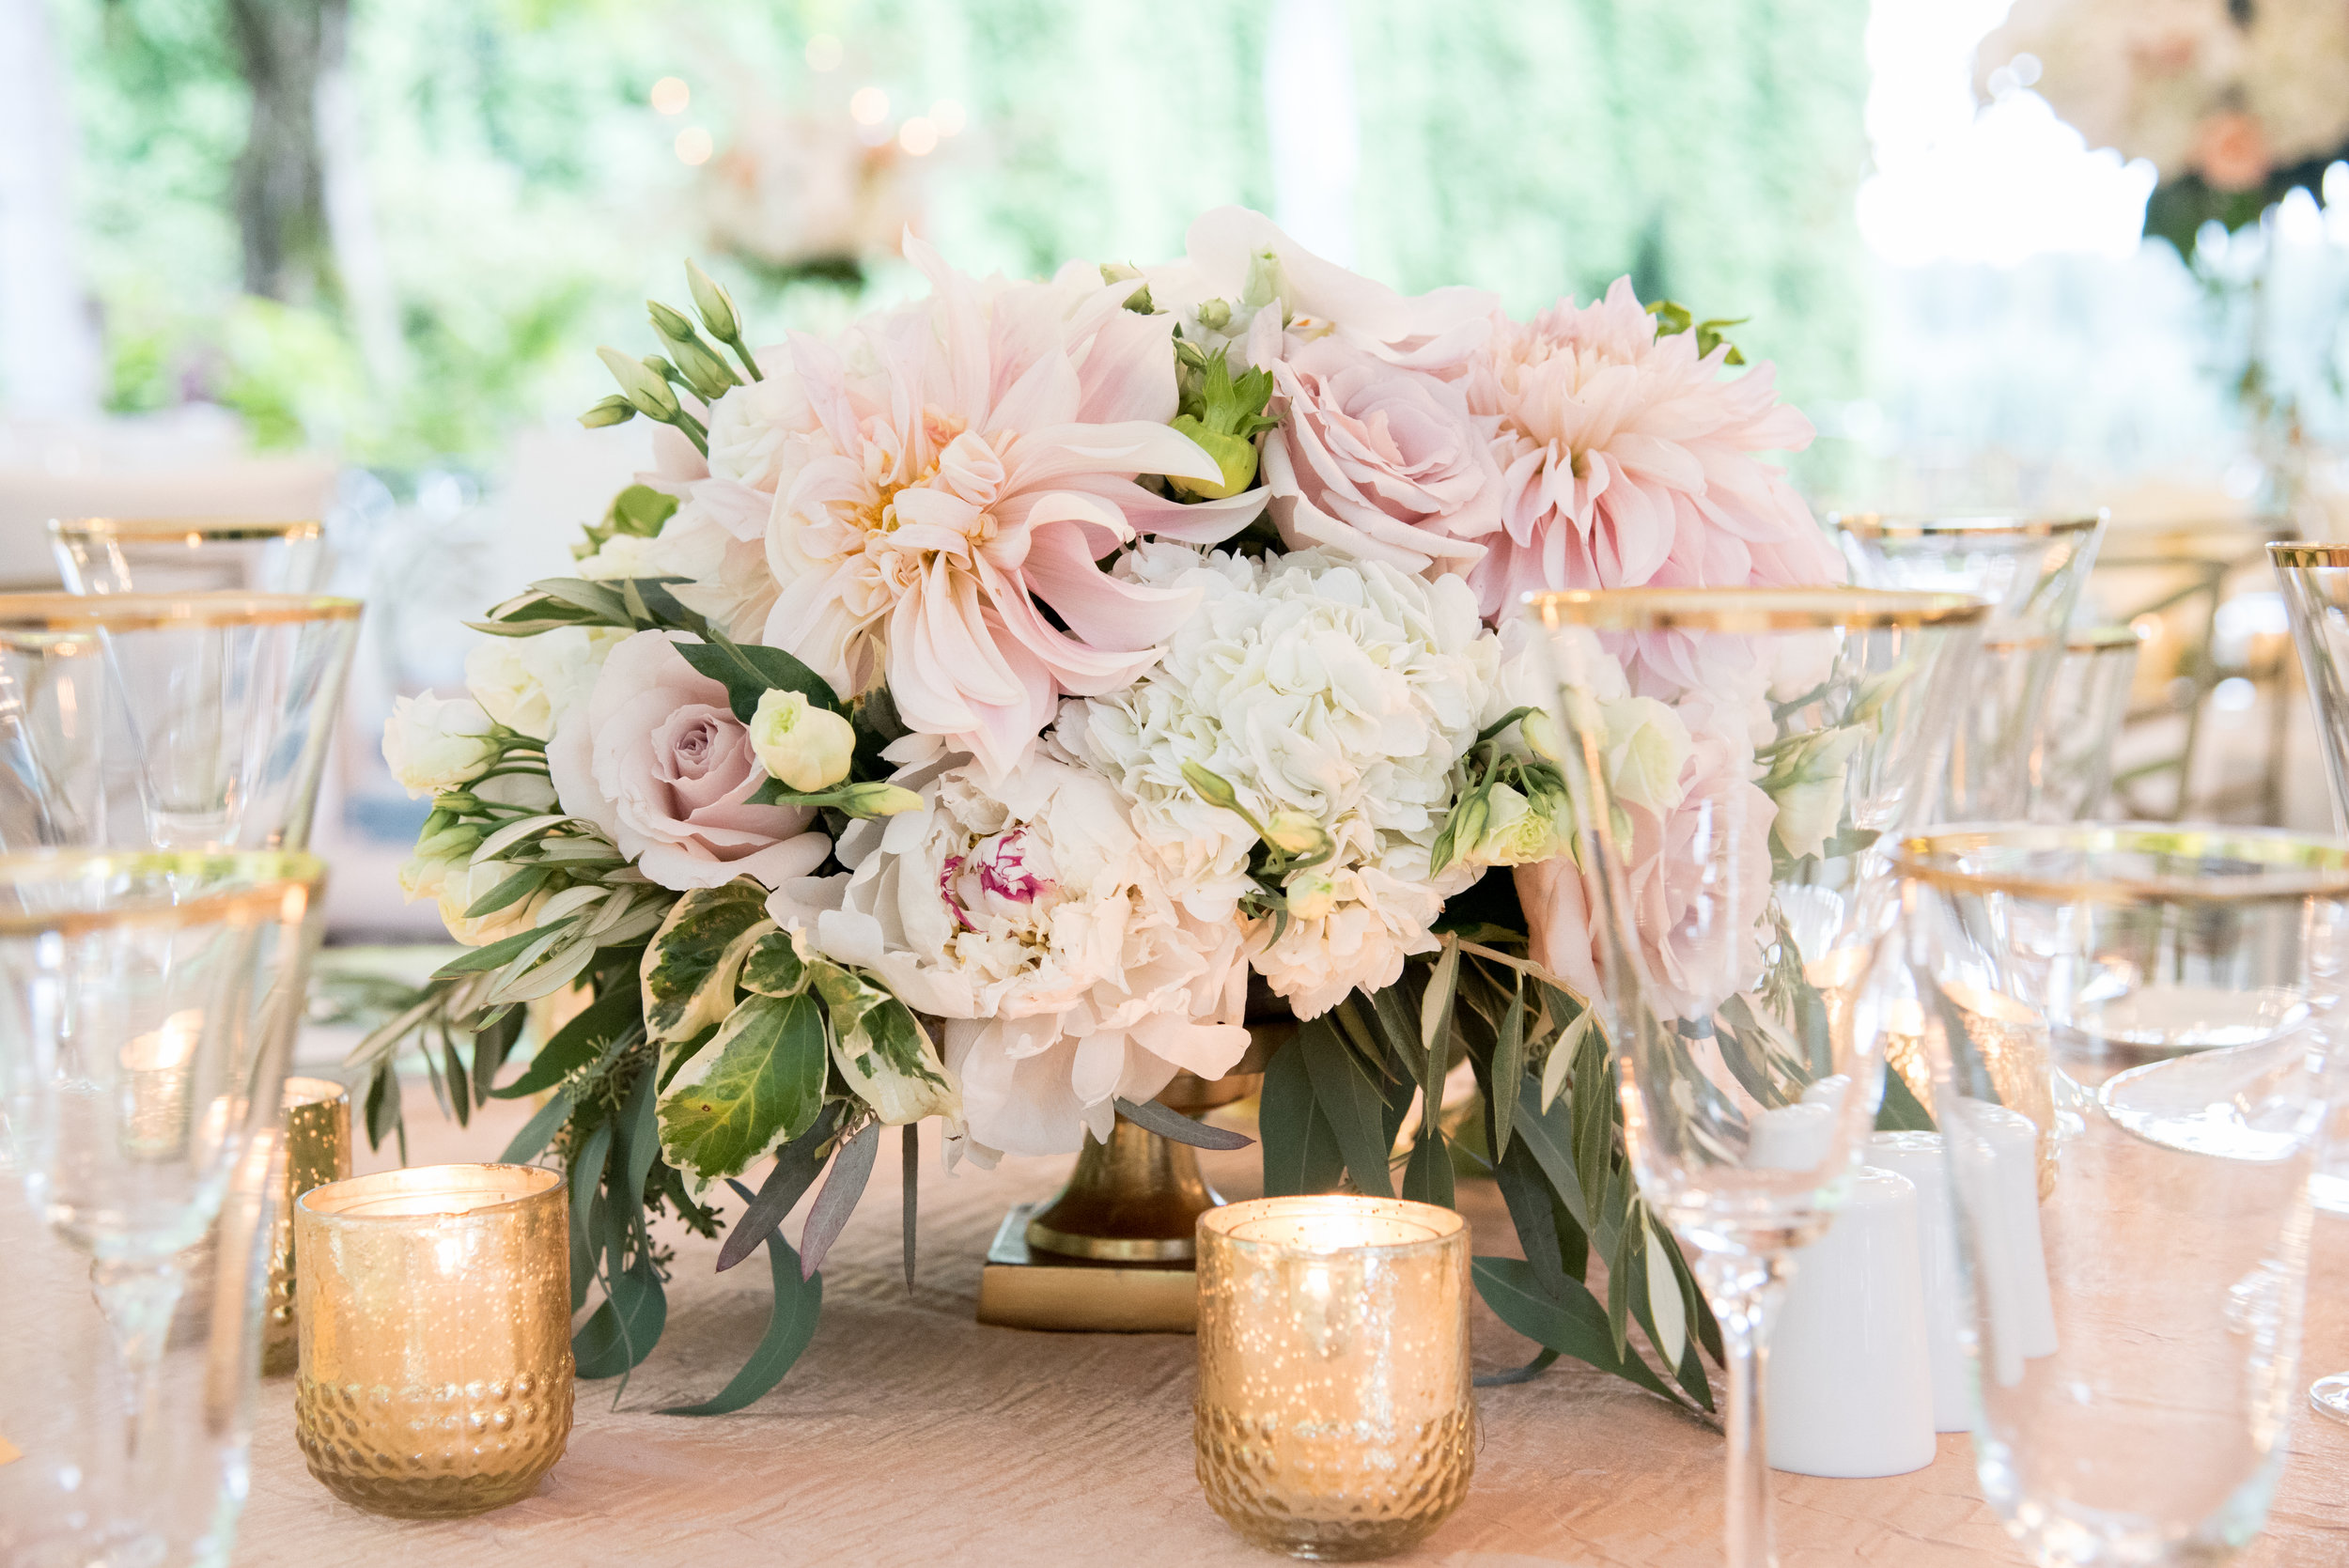 Elegant and Stunning Phalaenopsis Orchid Centerpieces